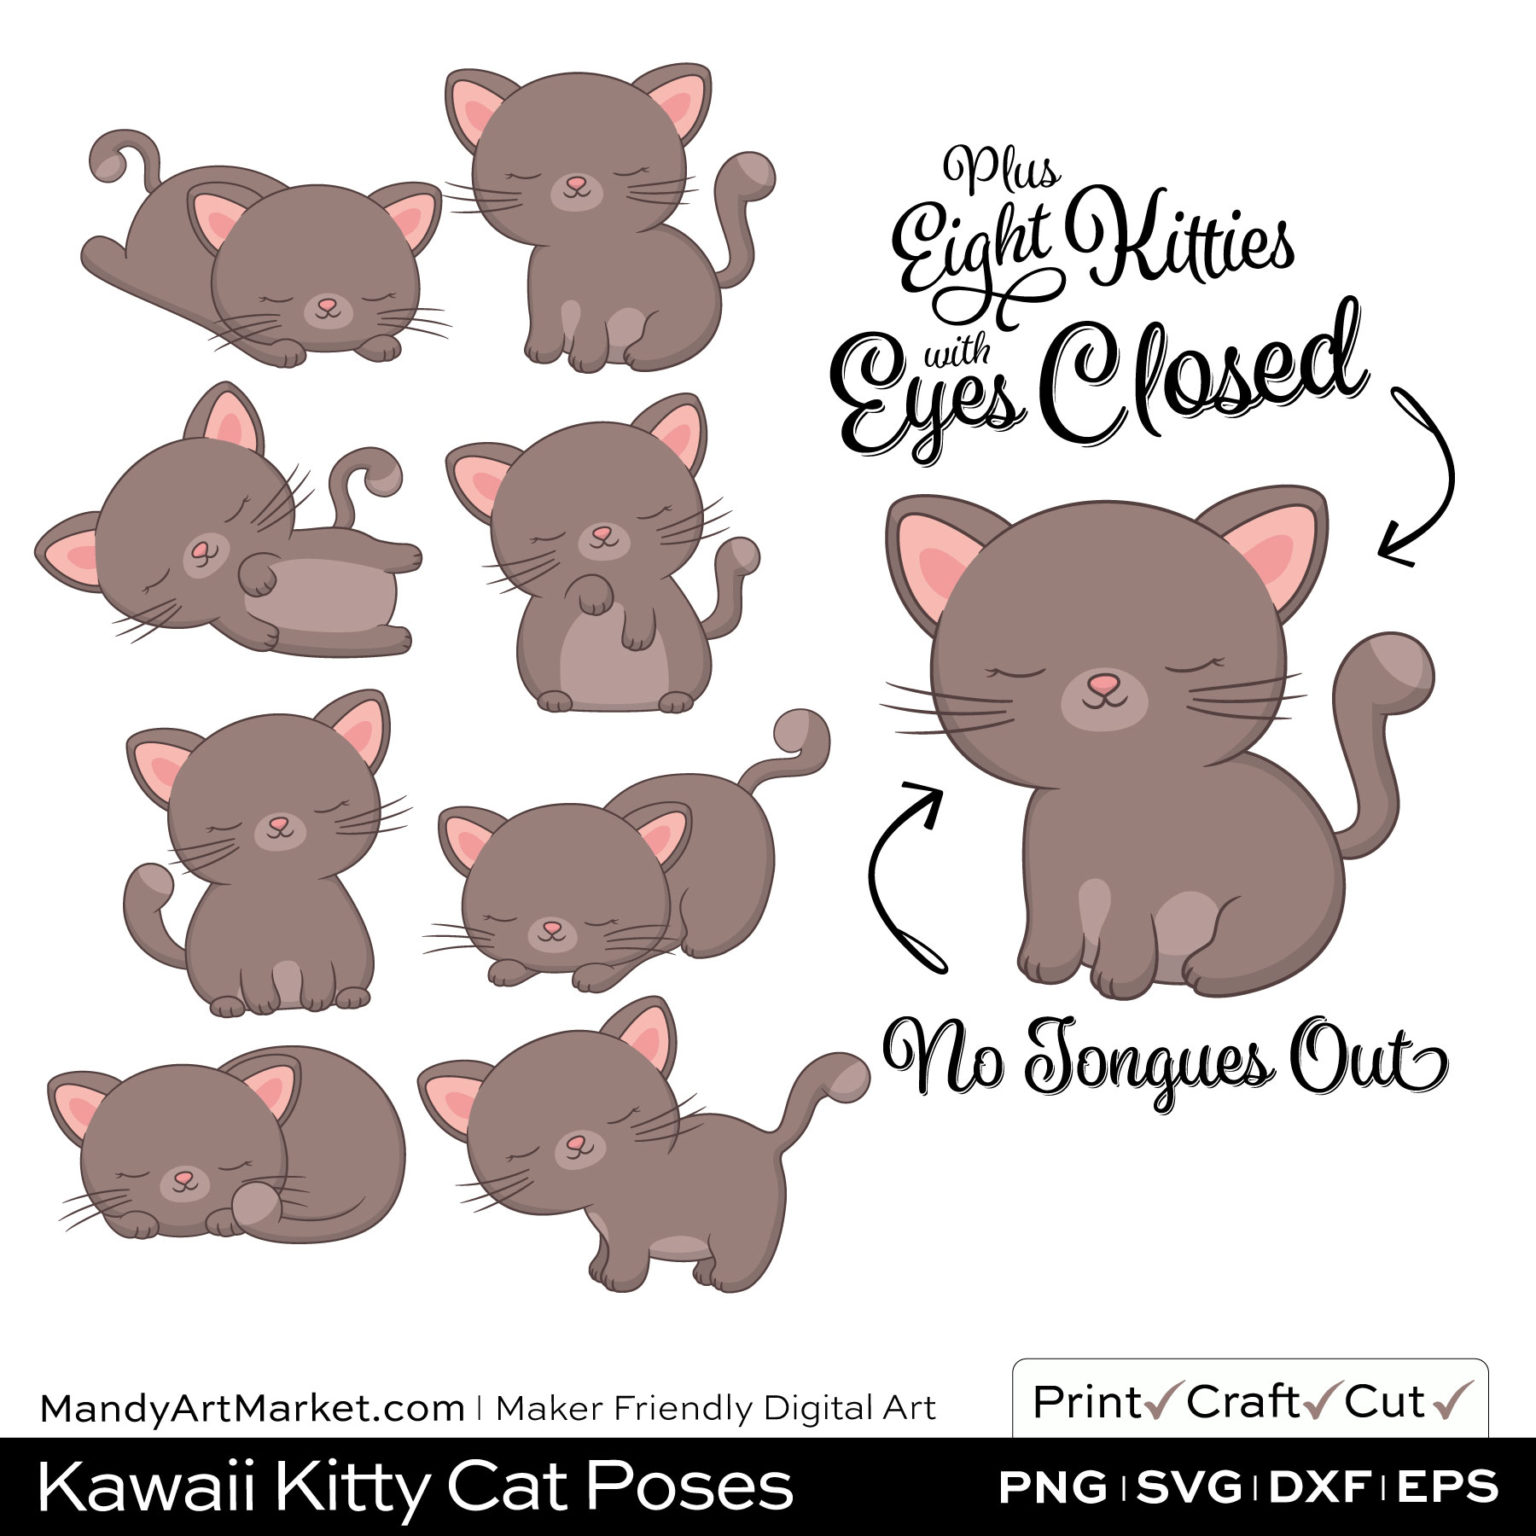 Barnboard Brown Kawaii Kitty Cat Poses Clipart PNGs Included in Download